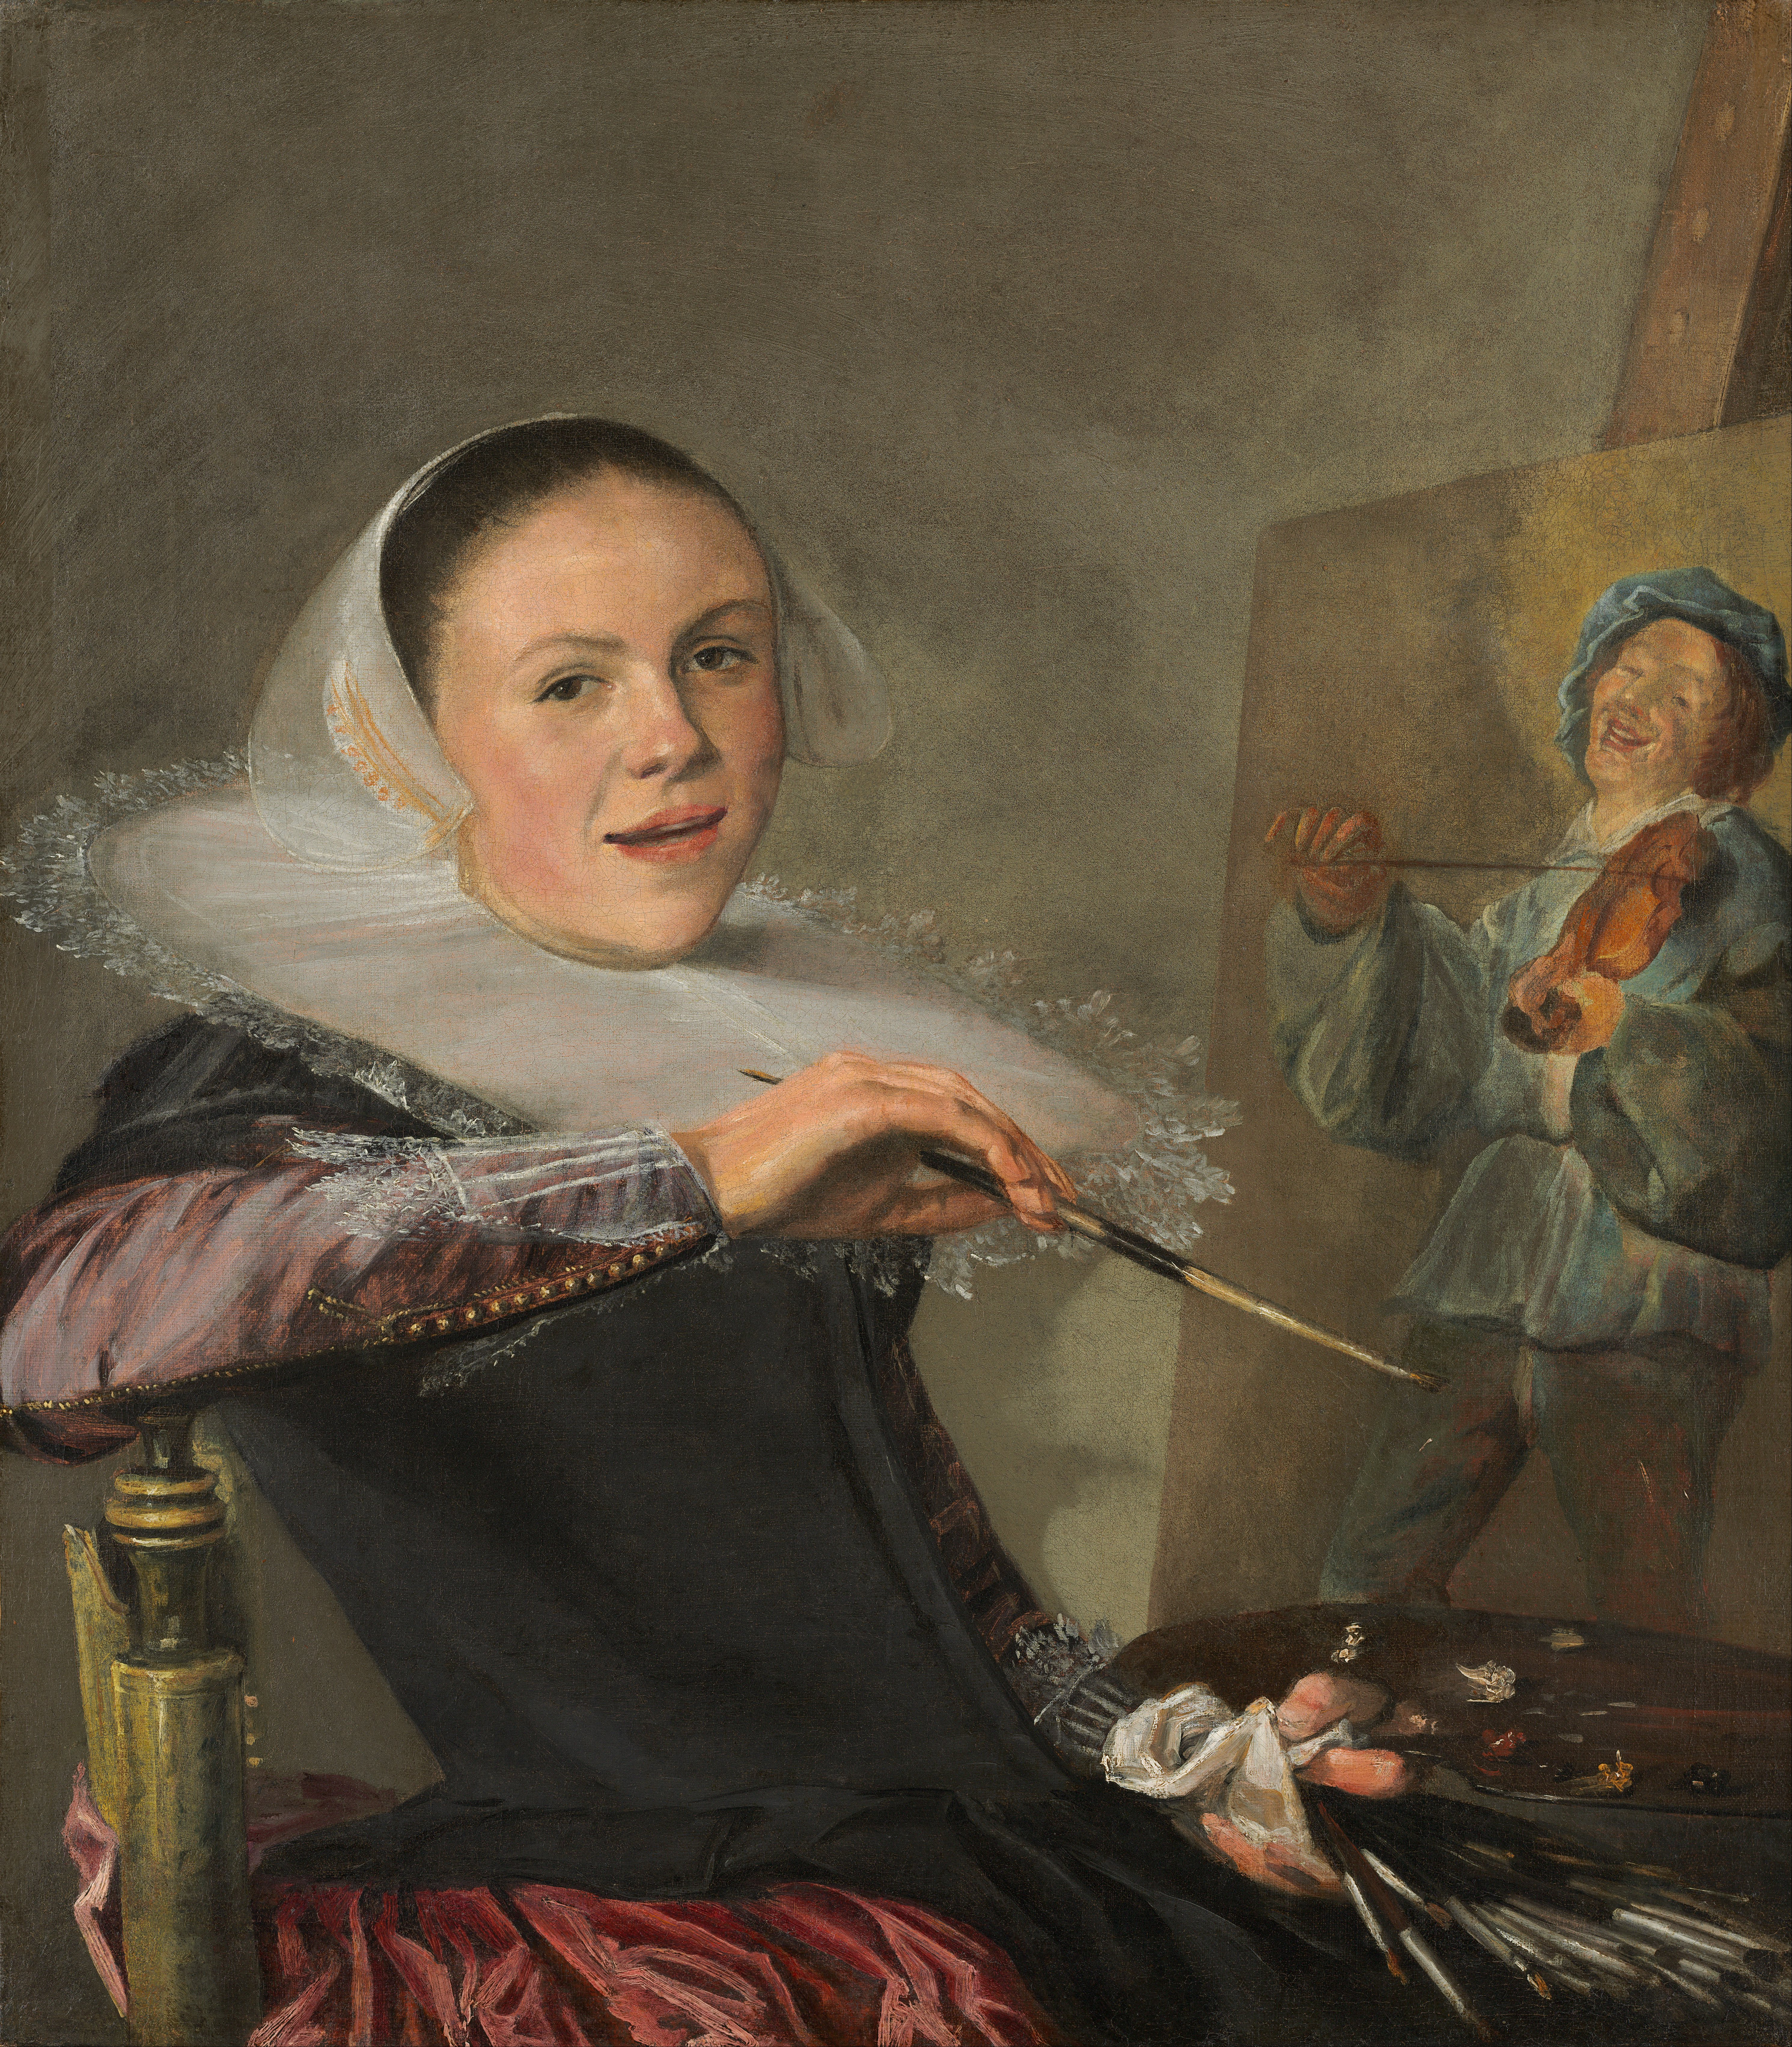 Judith Leyster - Self-Portrait - Google Art Project.jpg